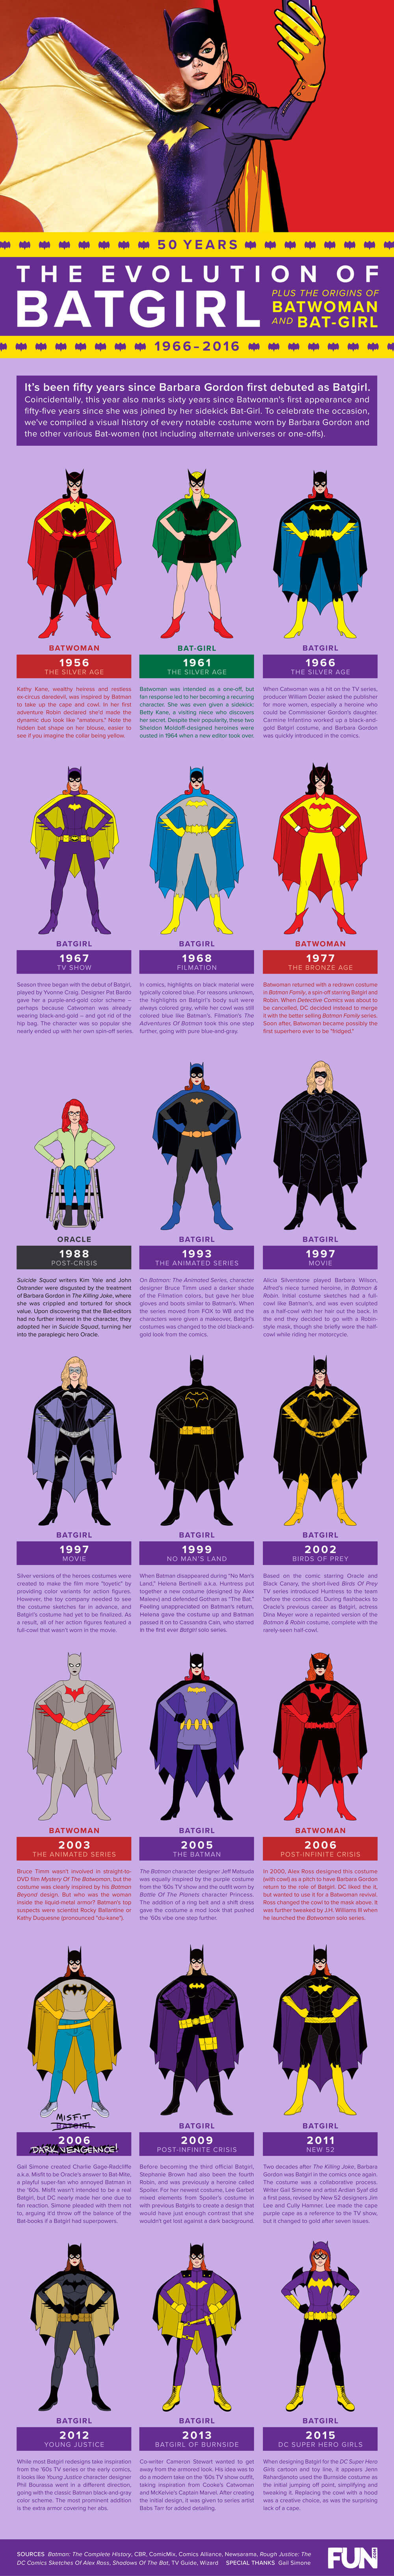 The Evolution of Batgirl